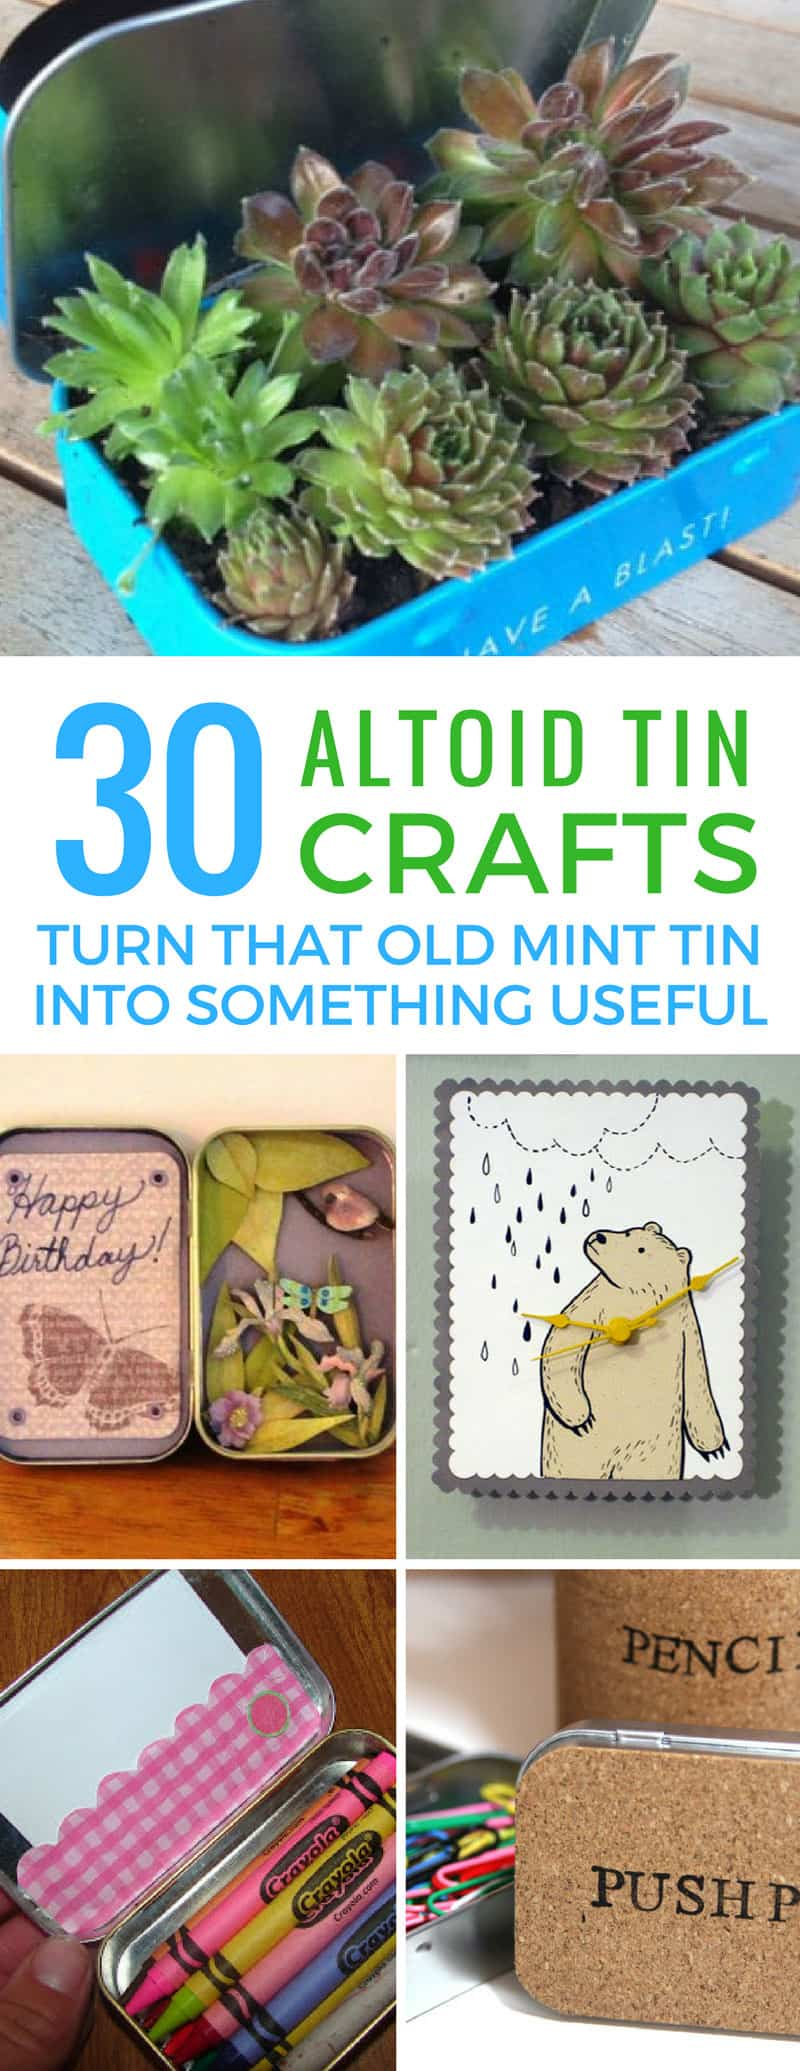 Who knew there were so many cool altoid tin crafts to make from an empty mint tin! Love that succulent garden!